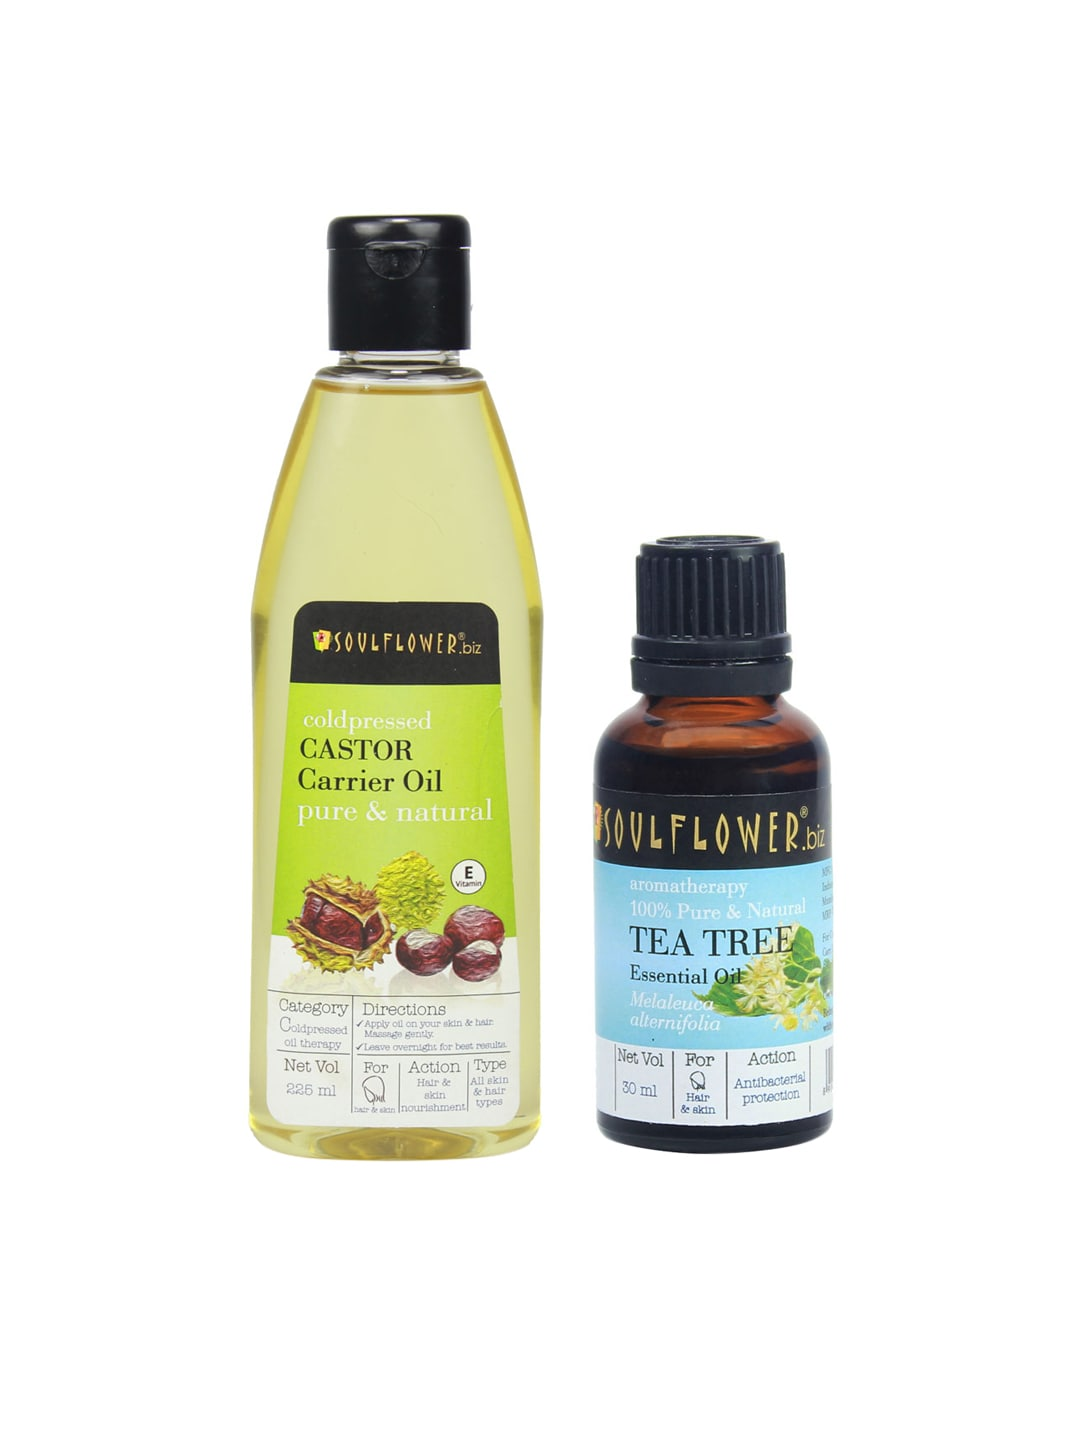 Soulflower Set of 2 Castor Carrier oil (225ml) & Tea Tree Essential Oils (30ml) image